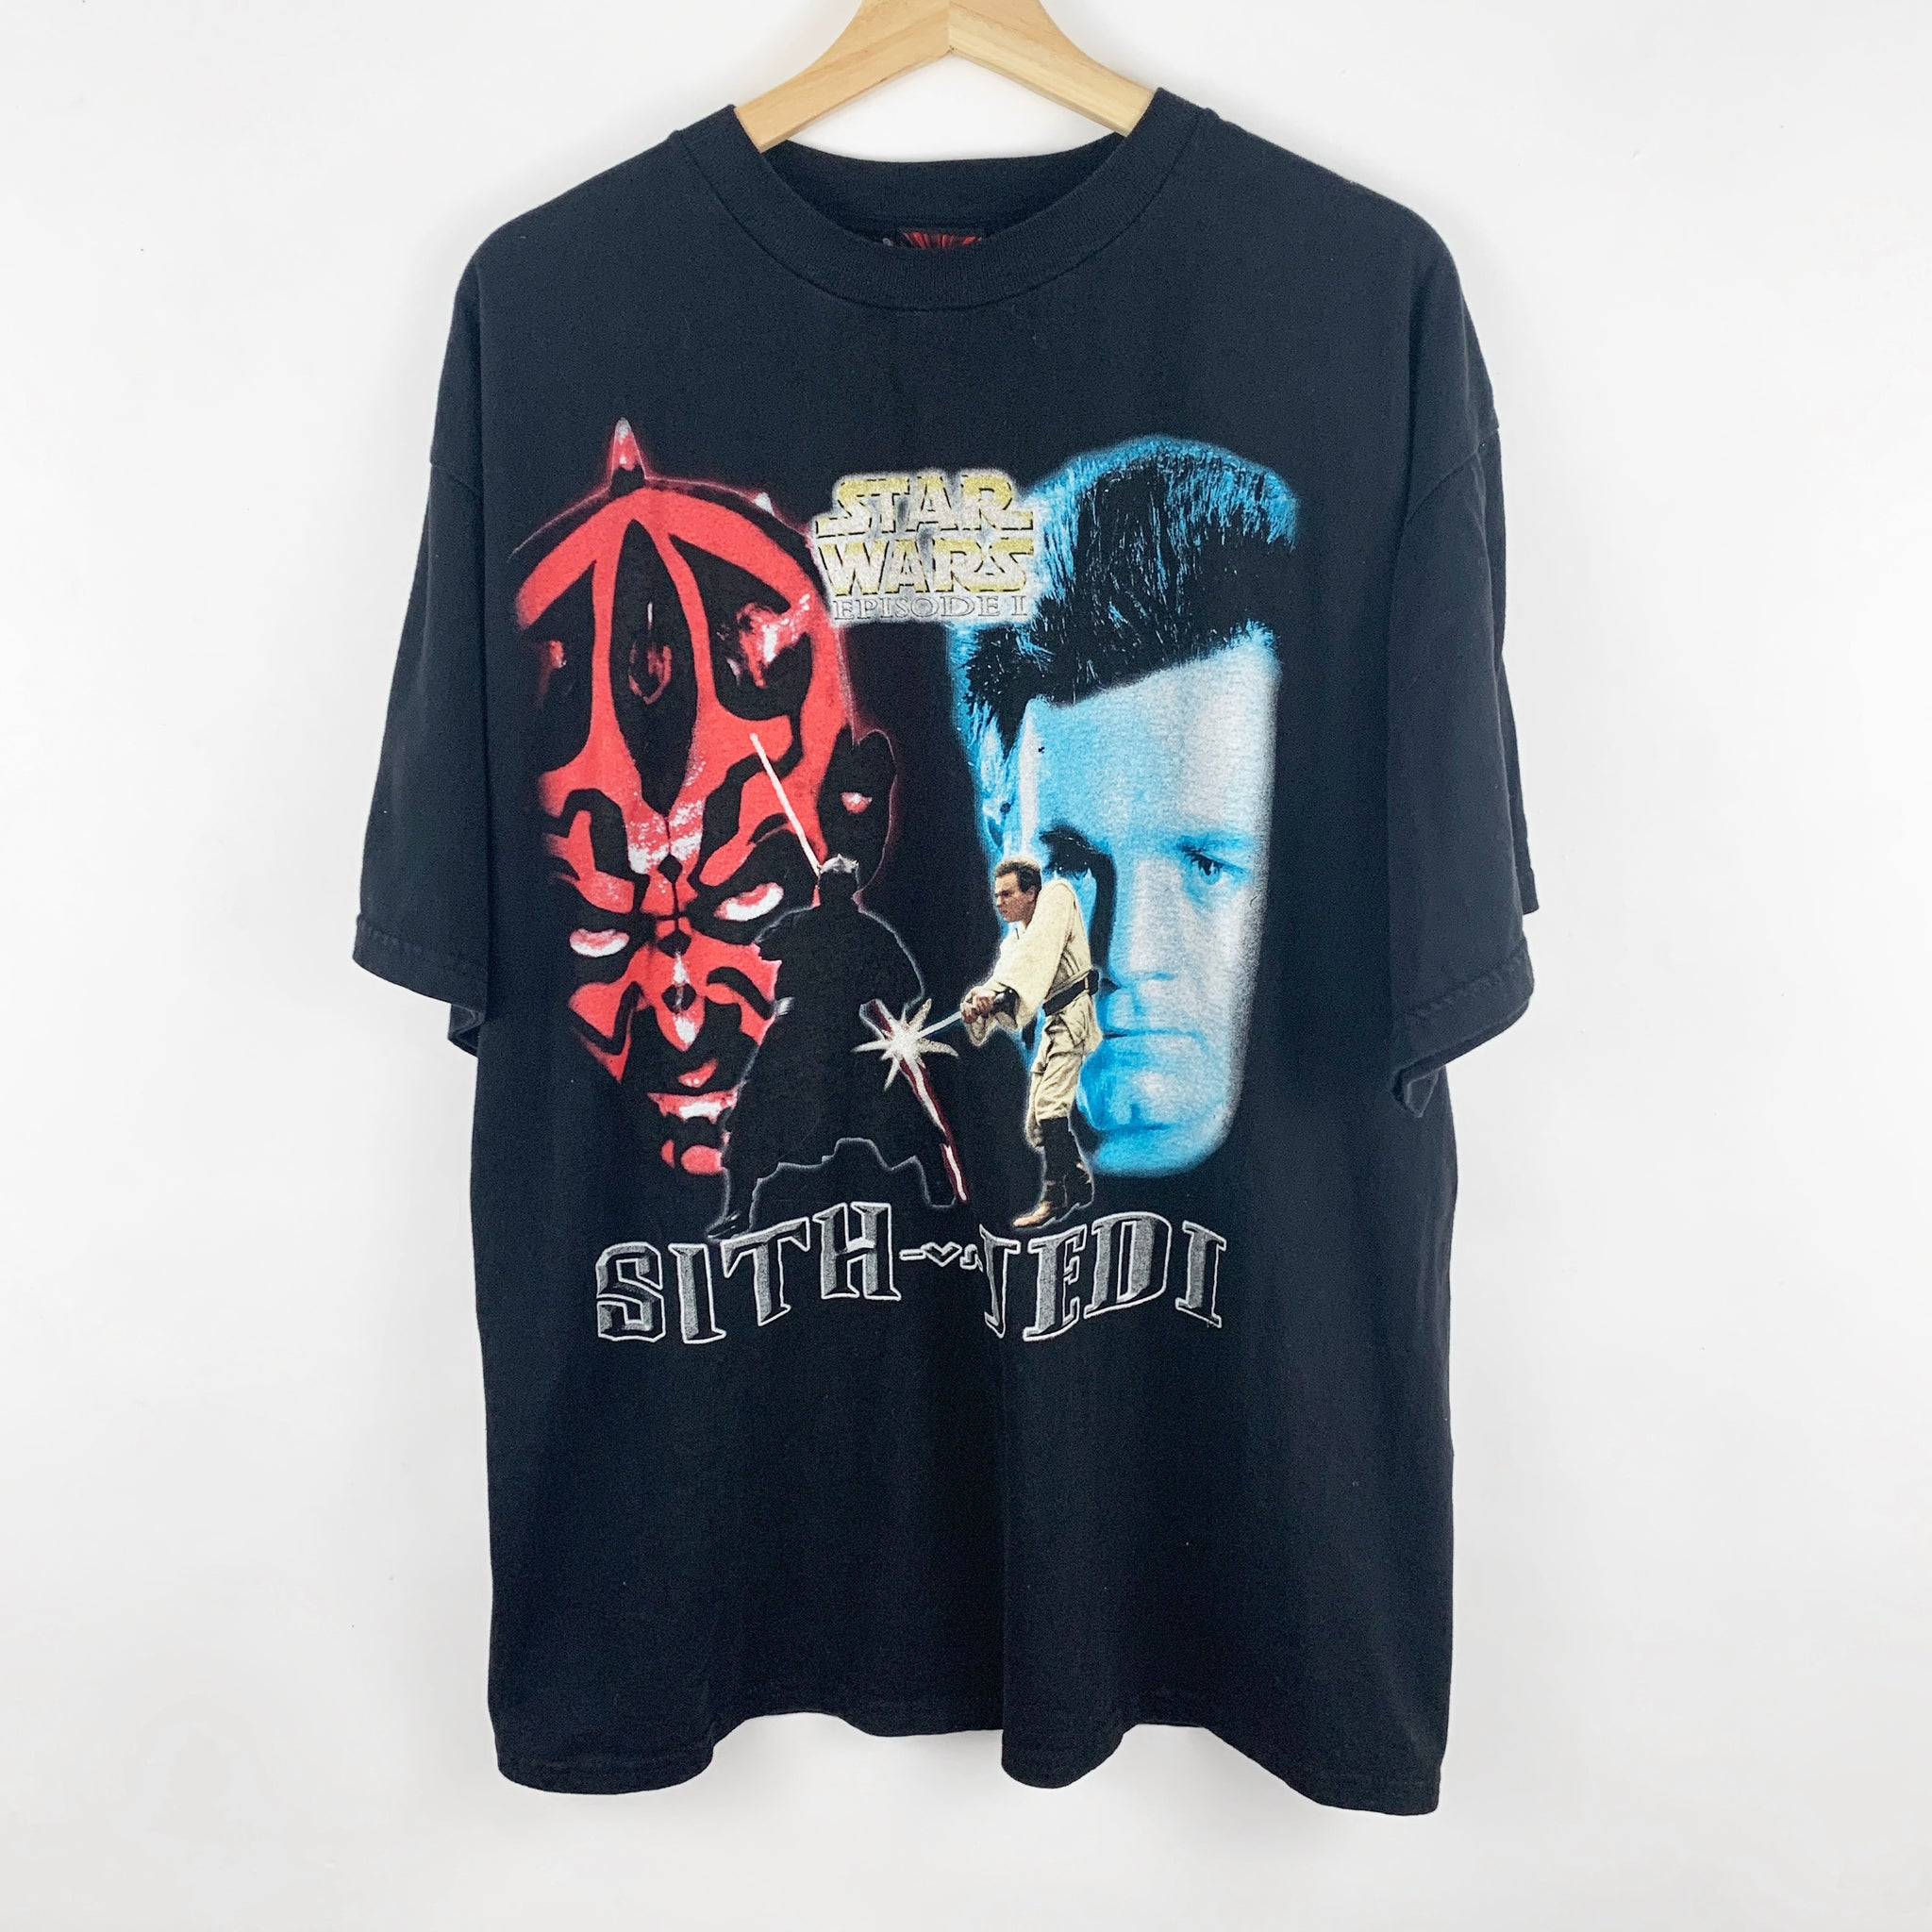 Vintage 1999 Stars Episode I: Jedi vs. Sith Graphic Movie Shirt